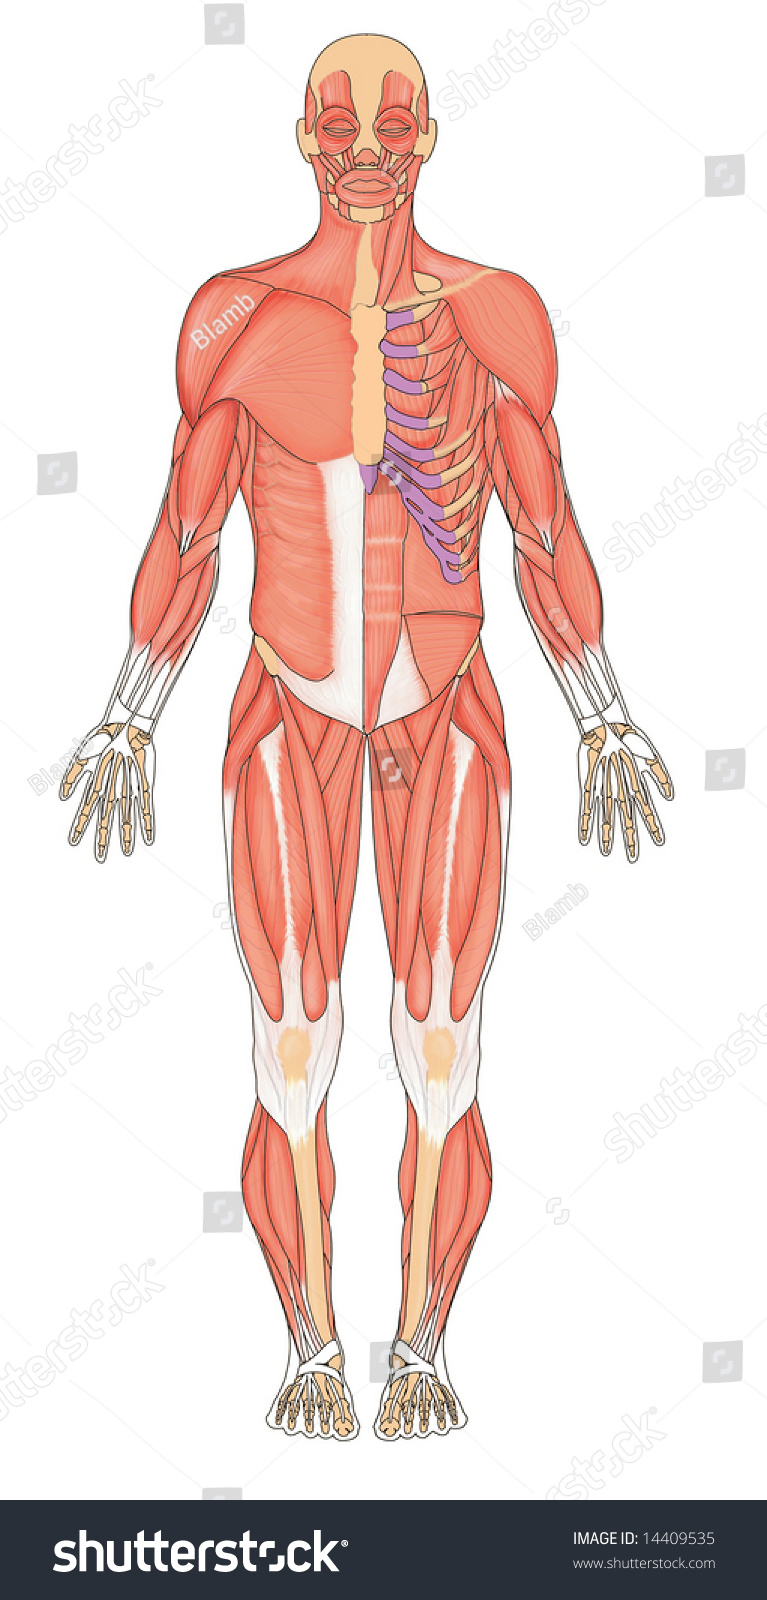 Anterior View Human Muscular System Stock Illustration 14409535